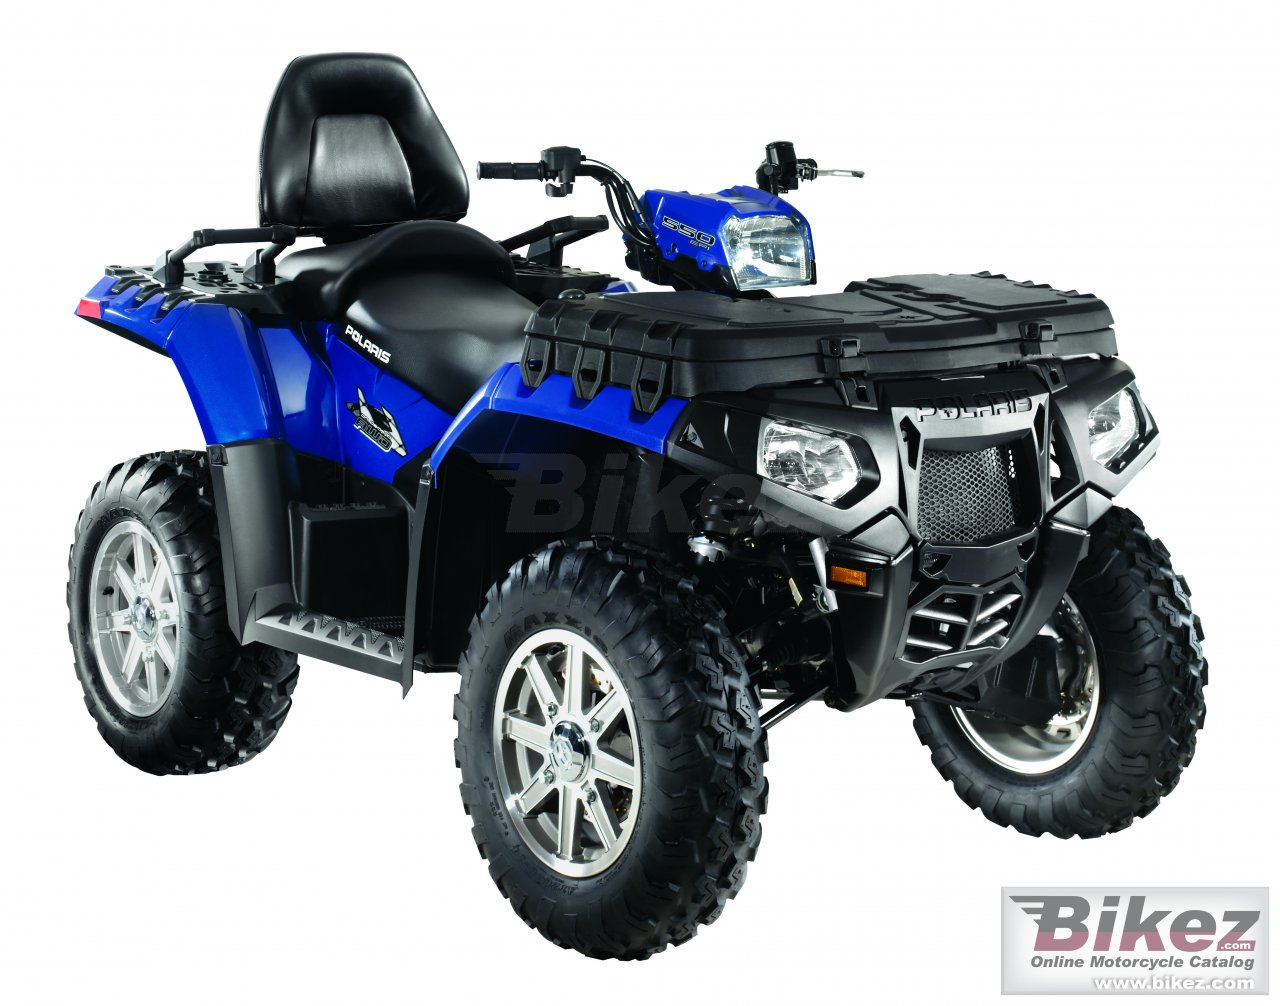 Polaris sportsman 550 touring